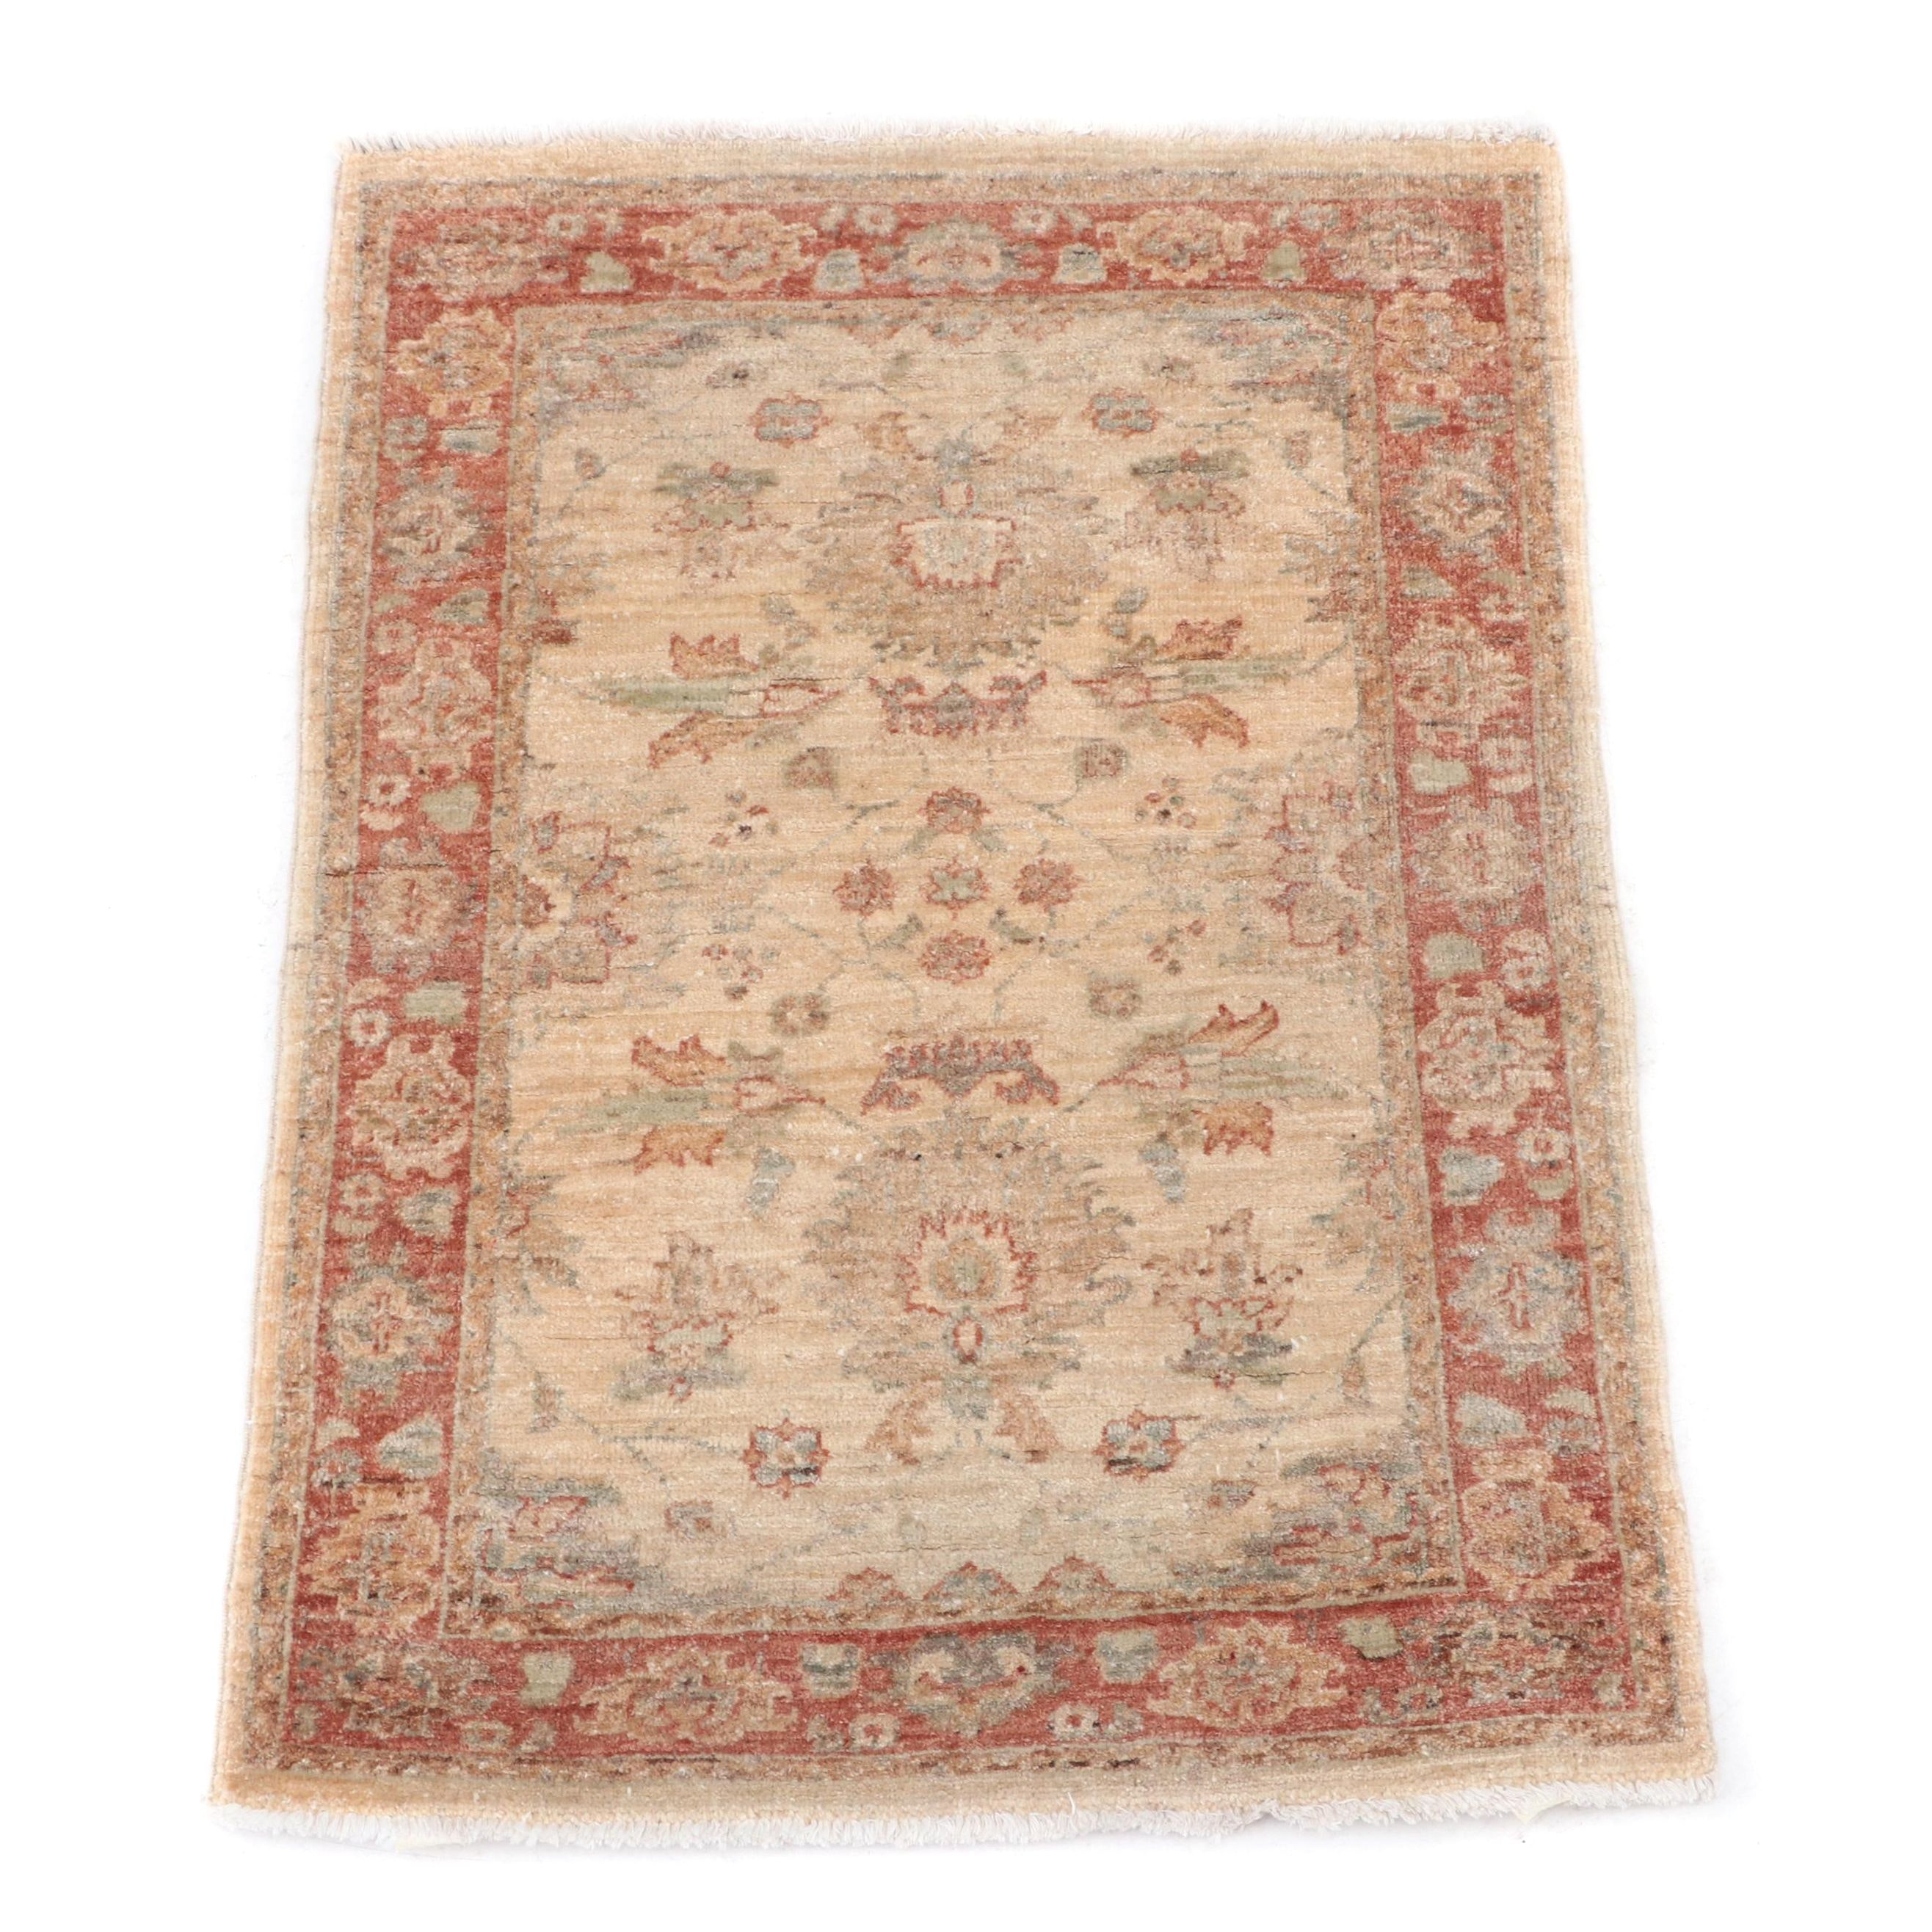 Hand-Knotted Oushak Wool Pile Rug